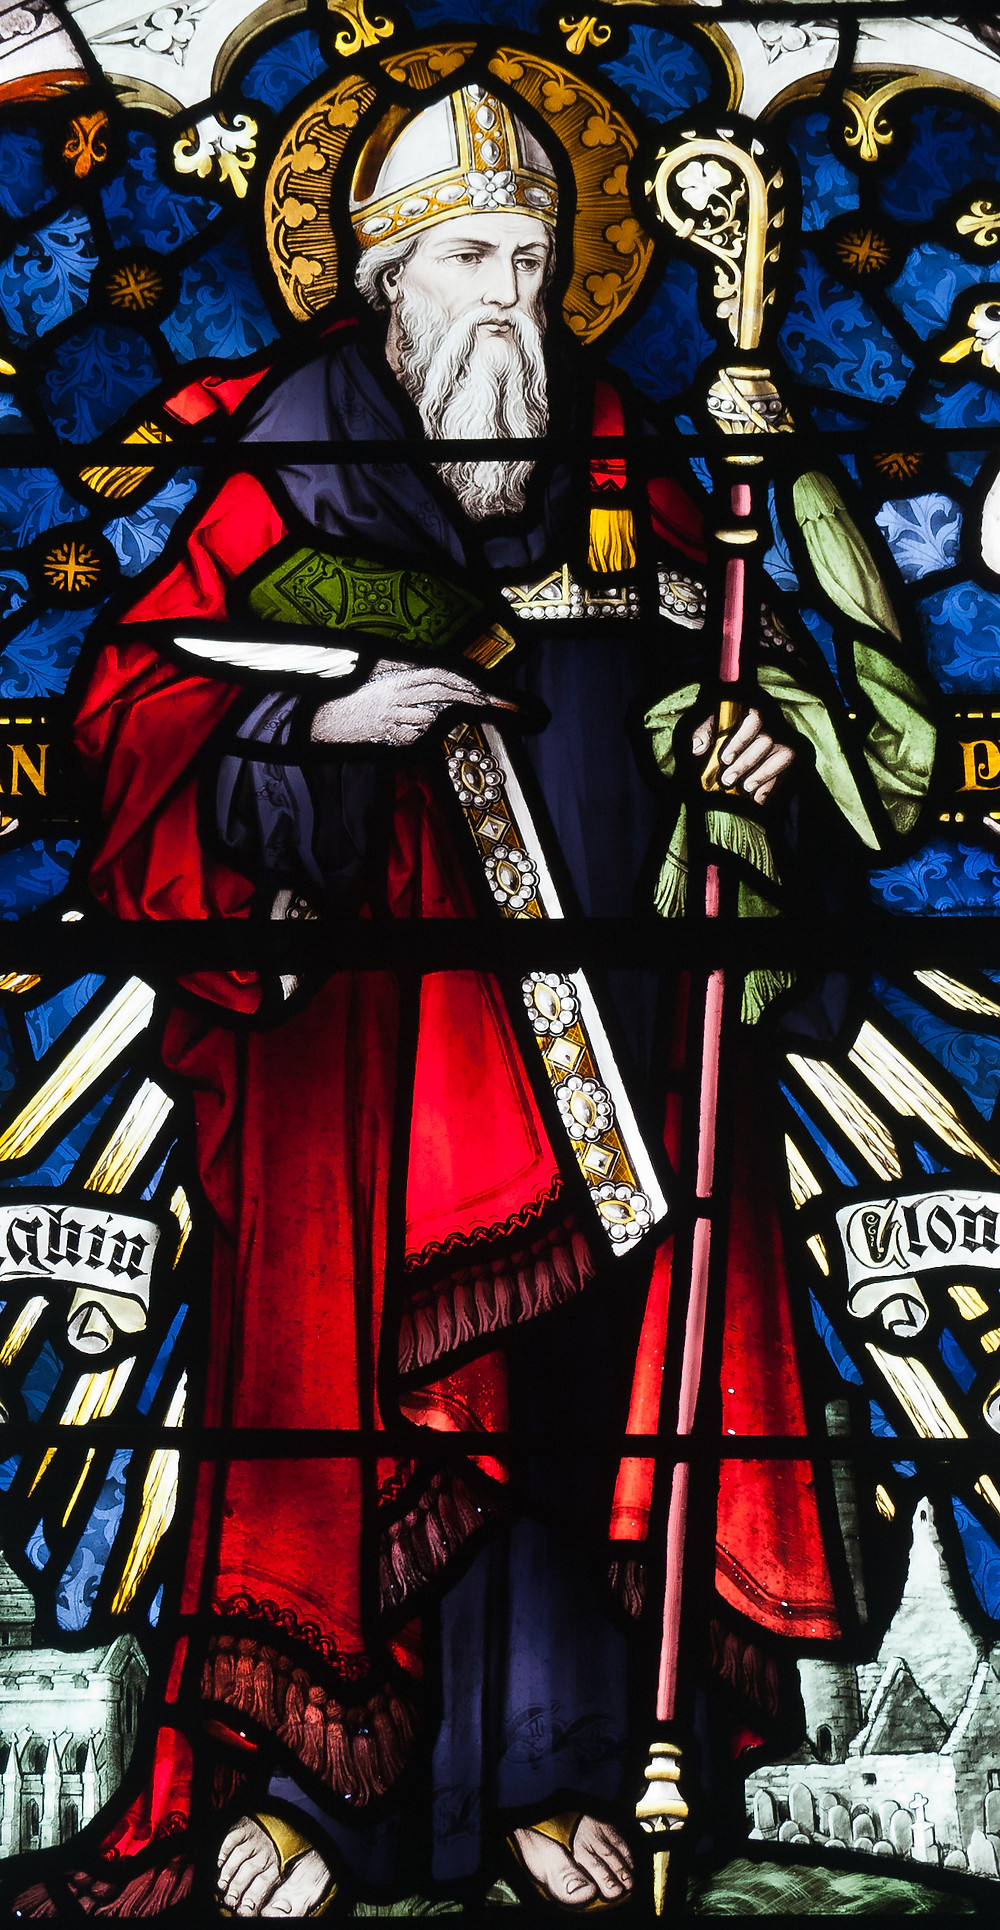 Stained glass window, St Brendan's Church, Birr, depicting St. Ciaran,By Andreas F. Borchert, CC BY-SA 4.0, https://commons.wikimedia.org/w/index.php?curid=15196921